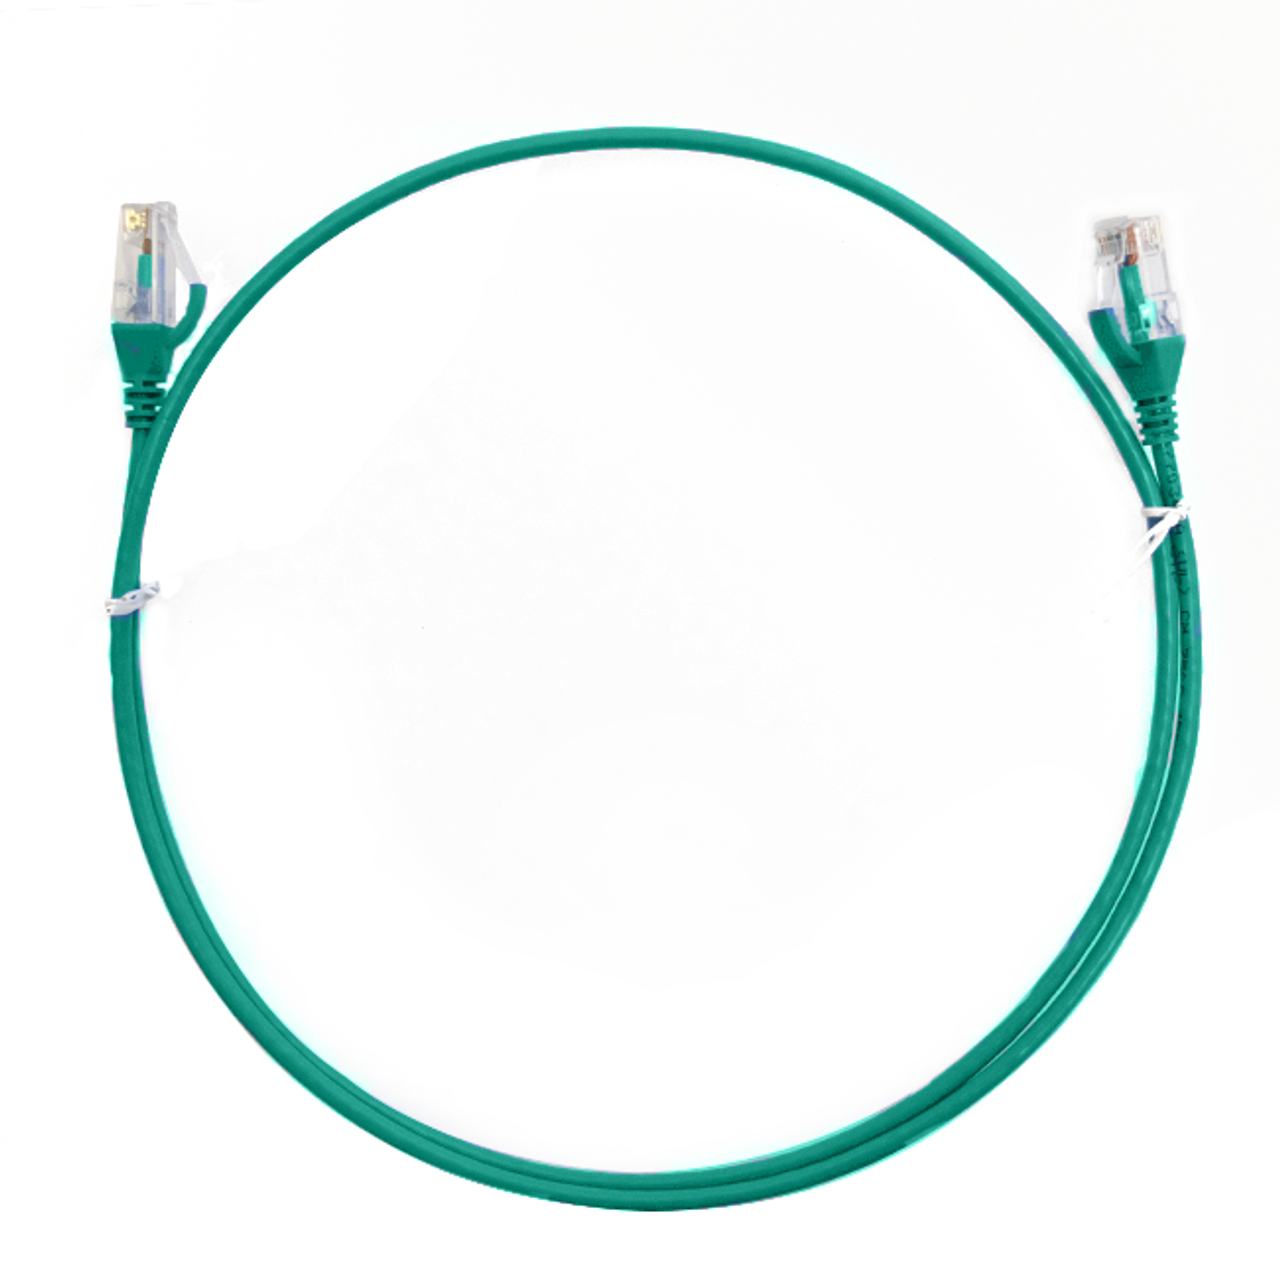 Image for 2m Cat 6 Ultra Thin LSZH Ethernet Network Cables: Green CX Computer Superstore